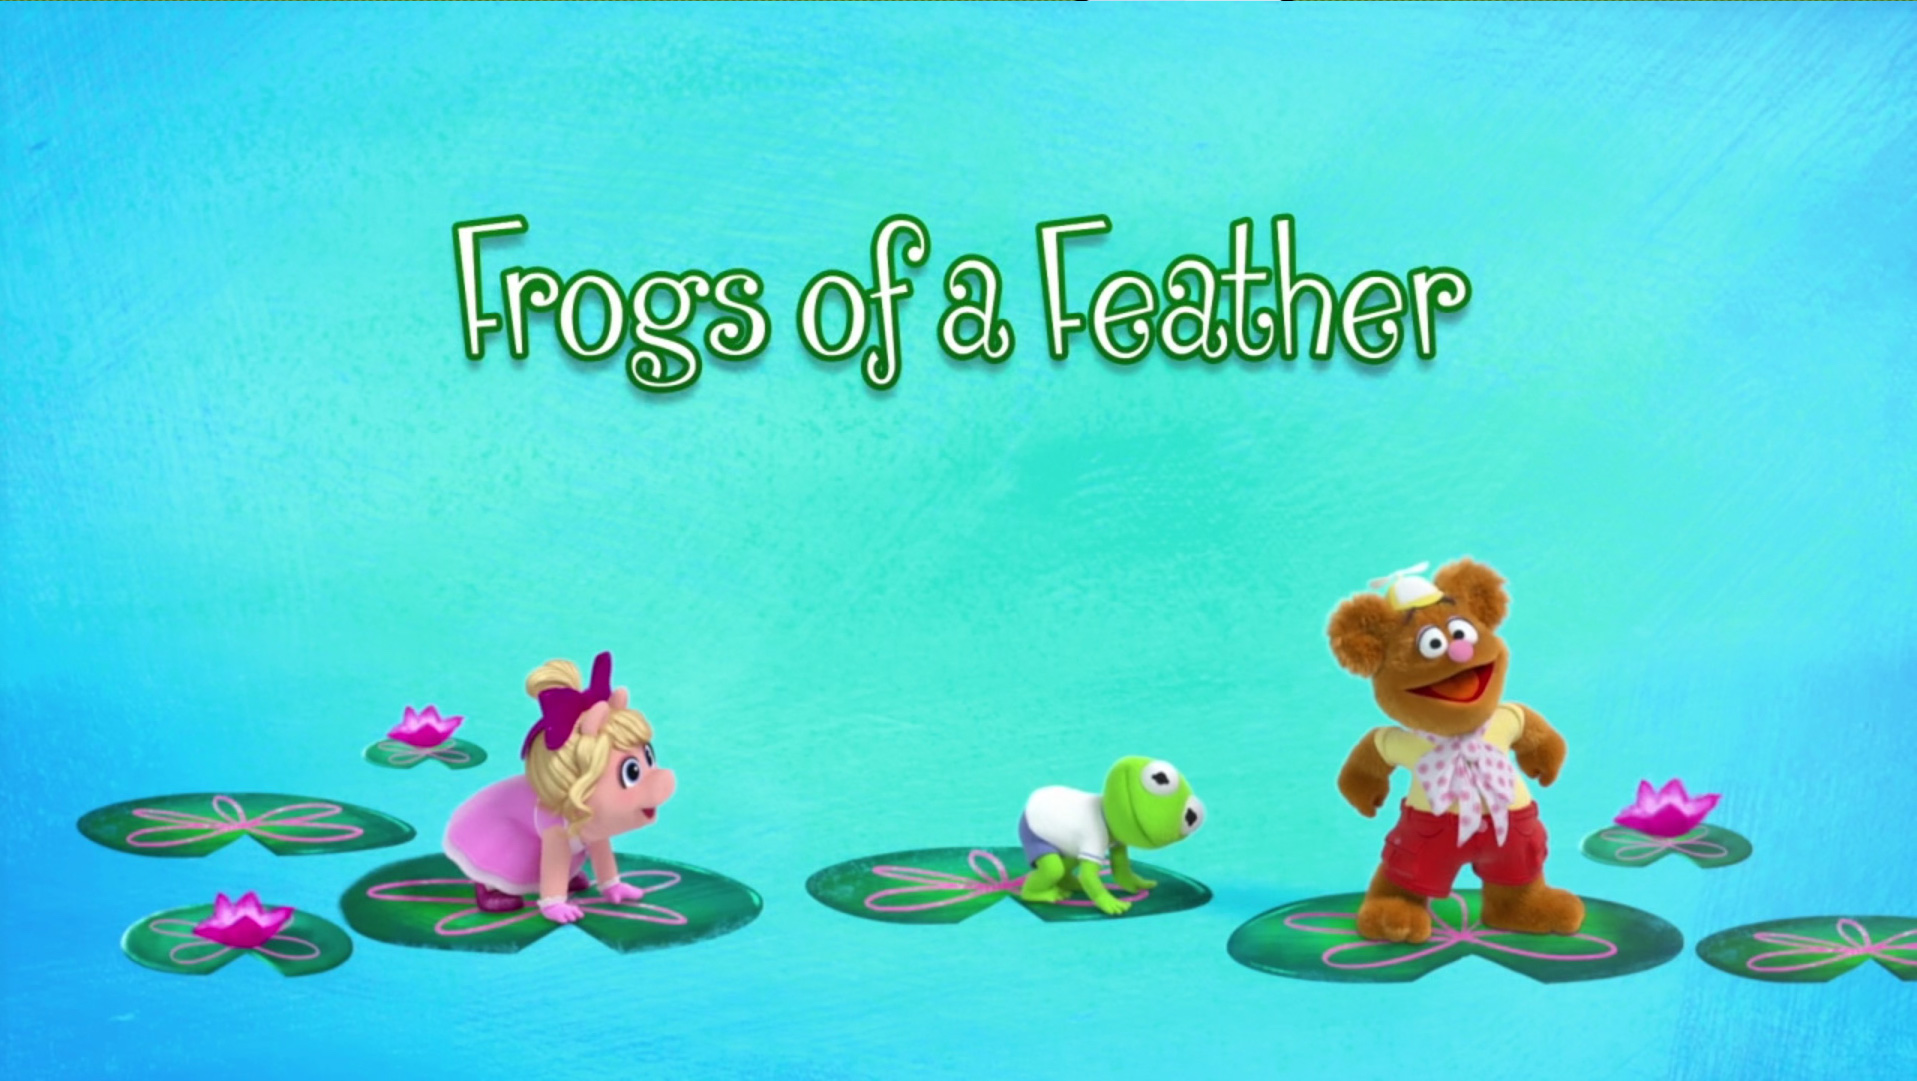 Frogs of a Feather | Disney Wiki | FANDOM powered by Wikia